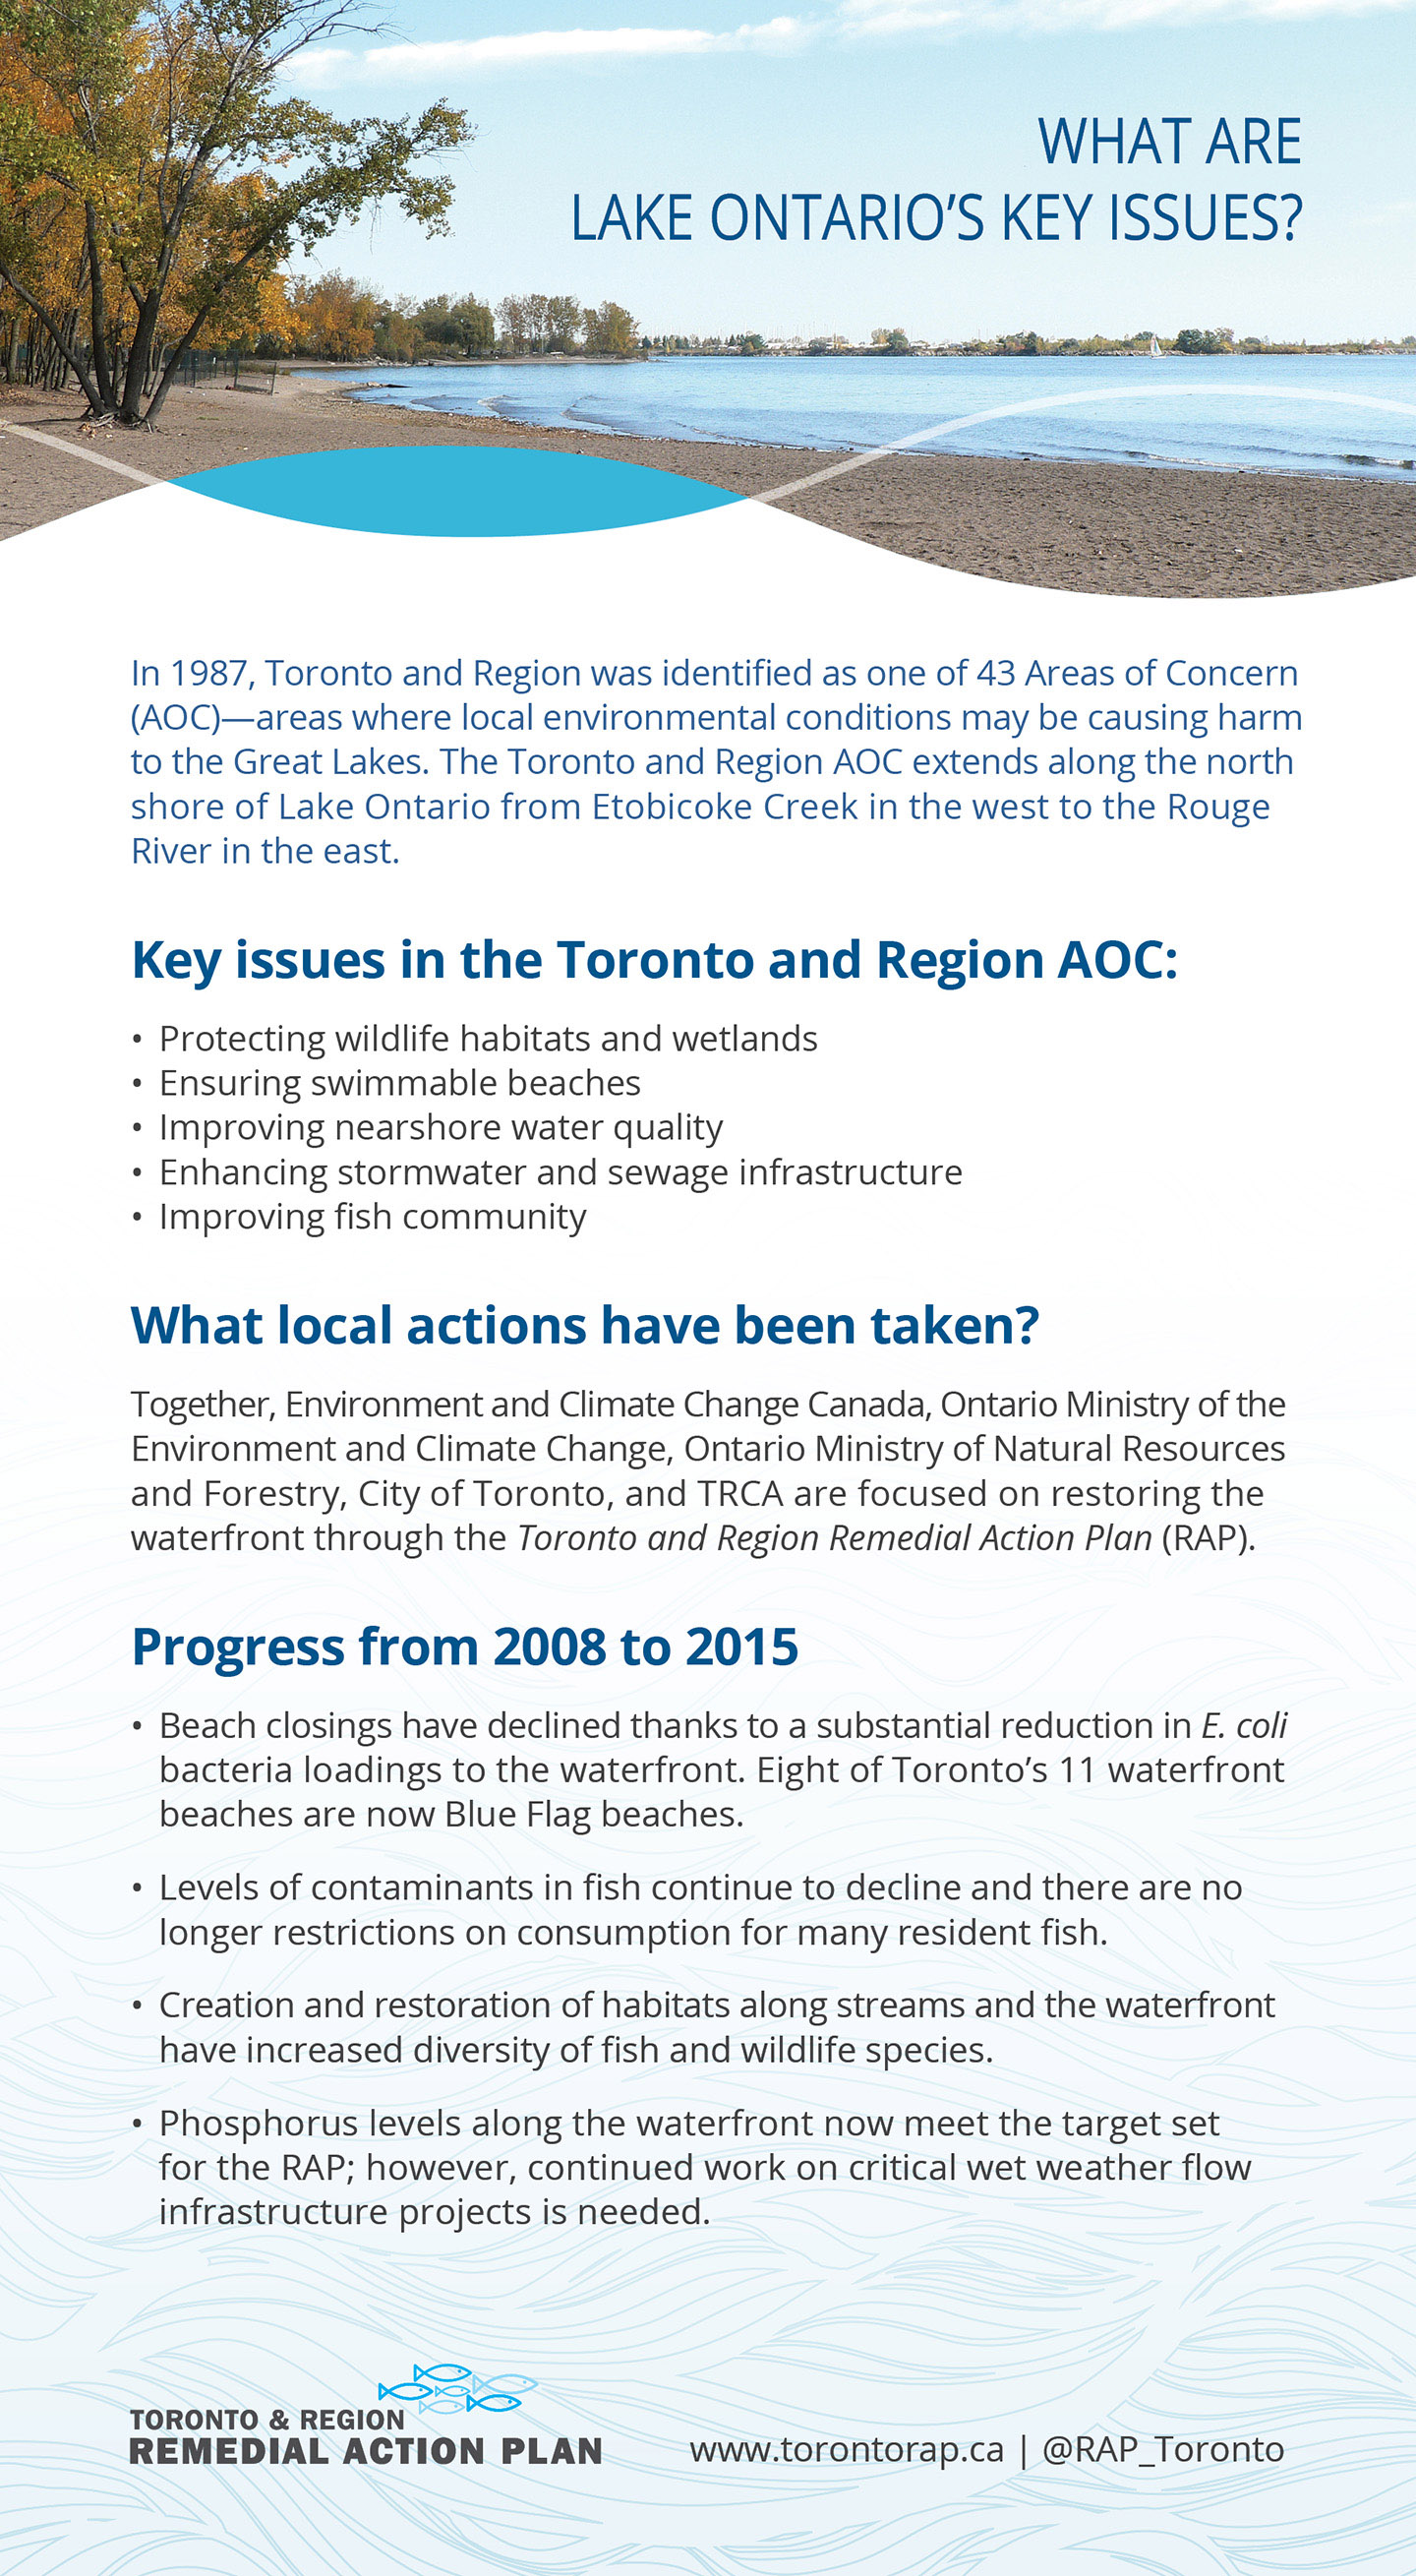 key issues panel of Lake Ontario Waterfront report card